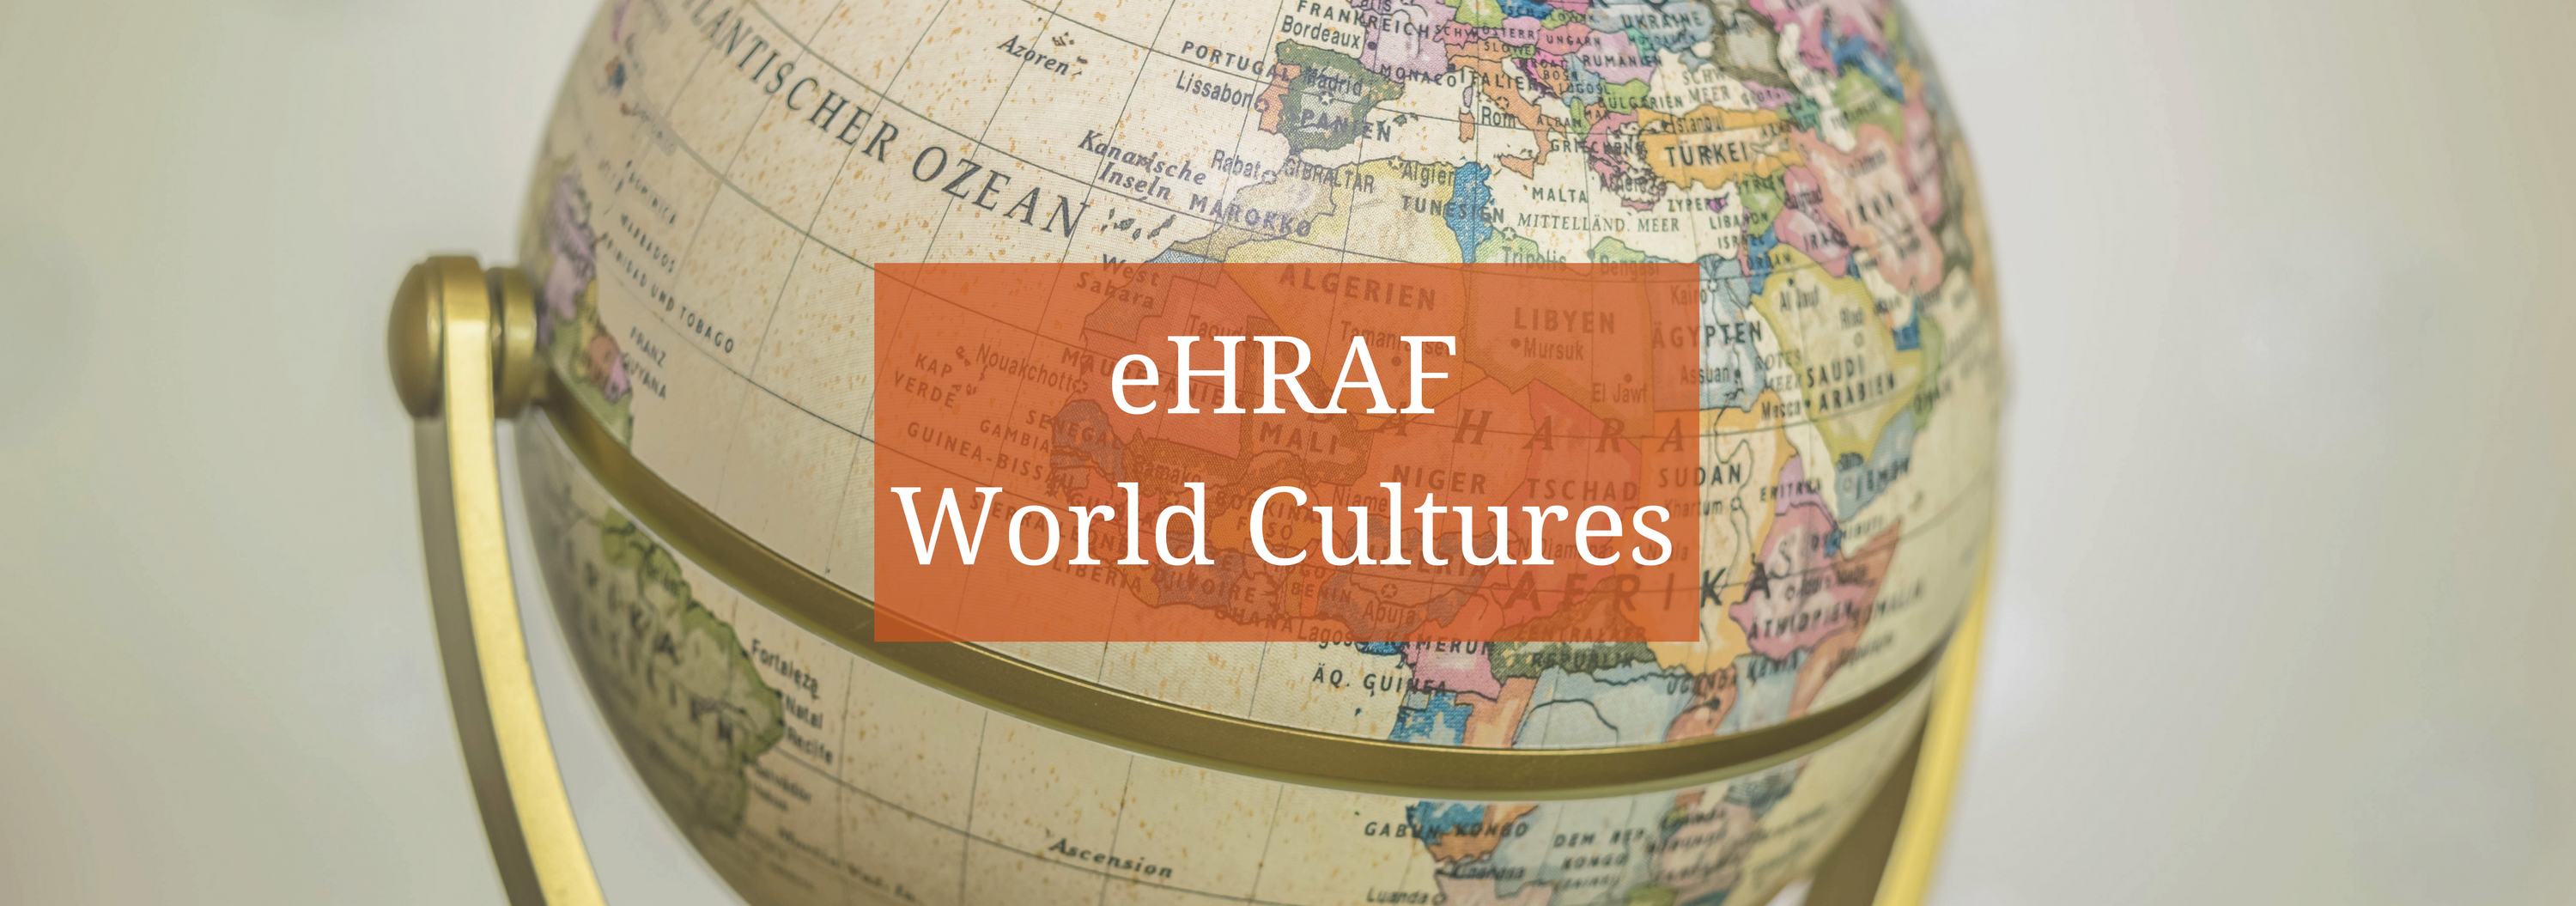 eHRAF World Cultures